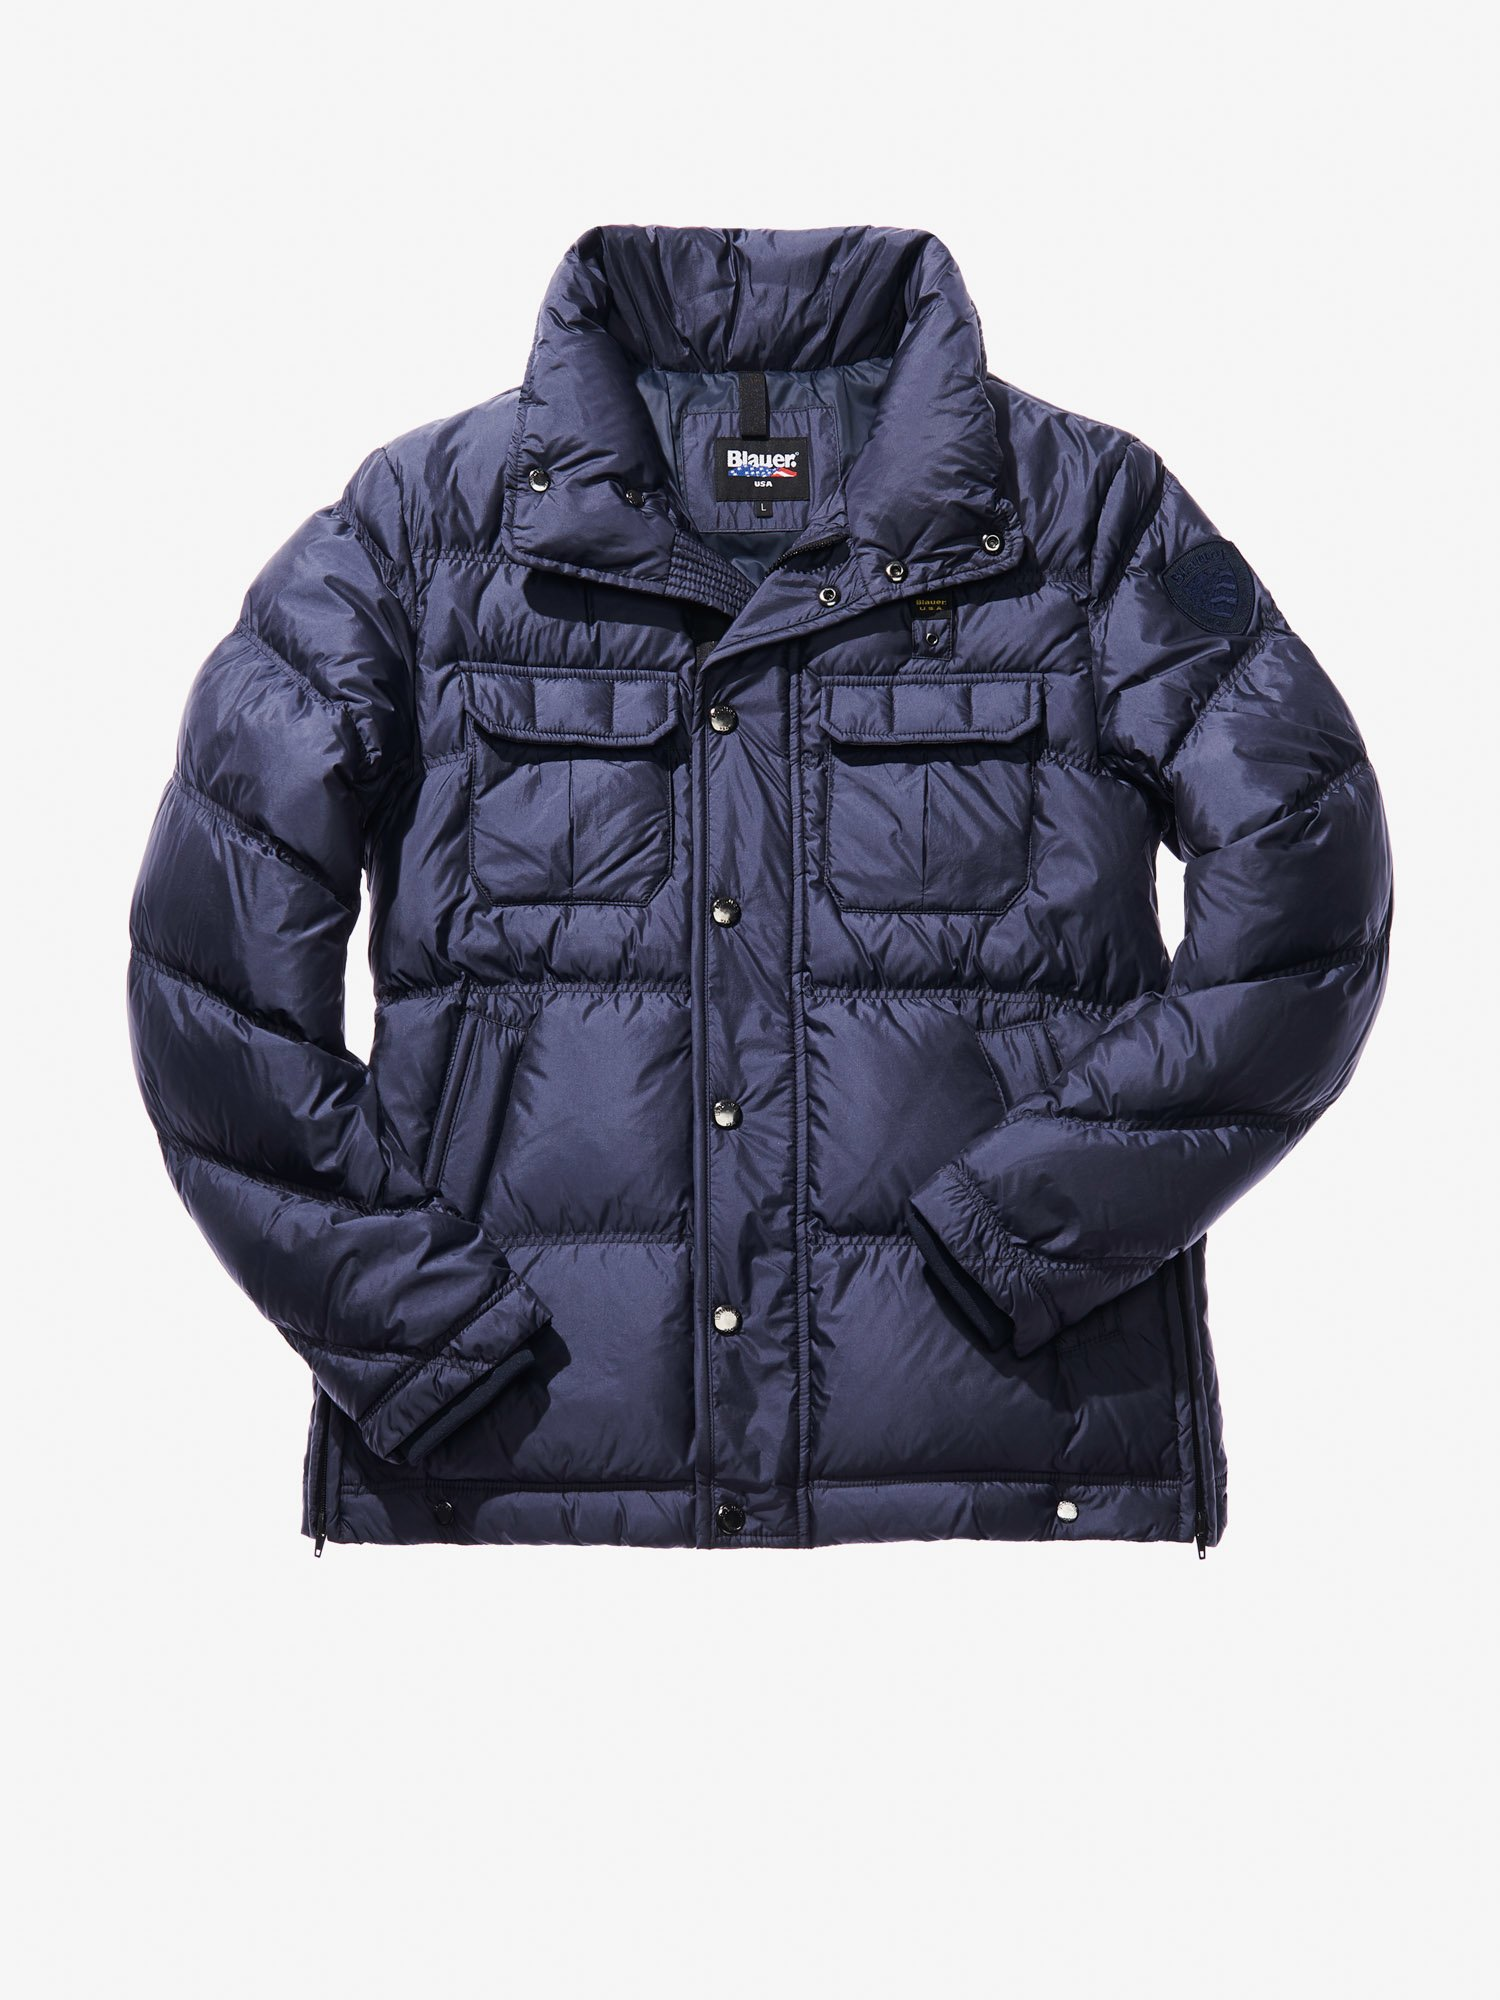 Blauer - GIOVANNI FOUR-POCKET POLICE-STYLE DOWN JACKET - blue - 1 ... b83f1694fce0